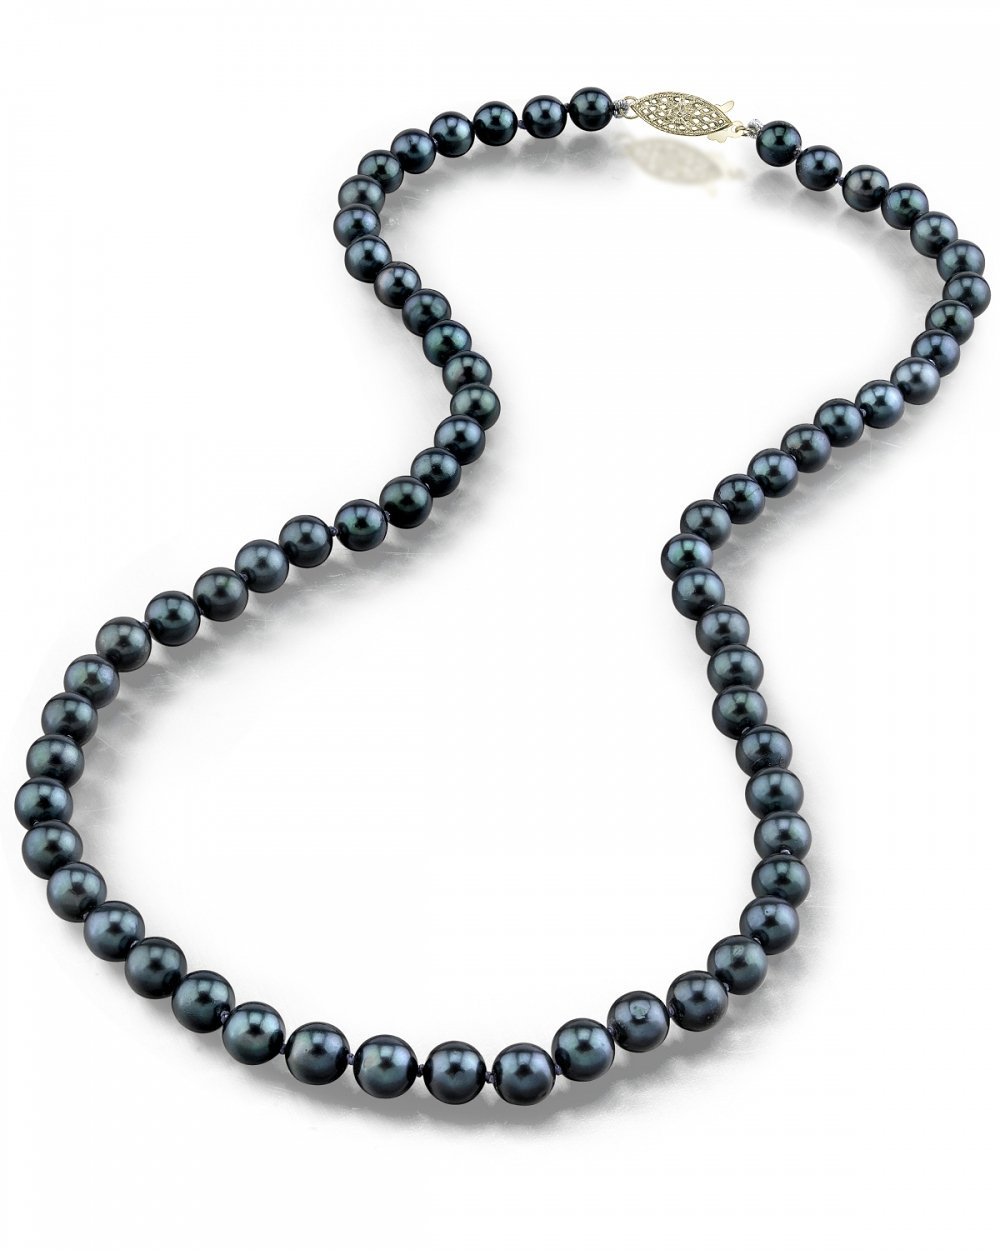 14K Gold 5.0-5.5mm Black Akoya Cultured Pearl Necklace - AA+ Quality, 17'' Princess Length